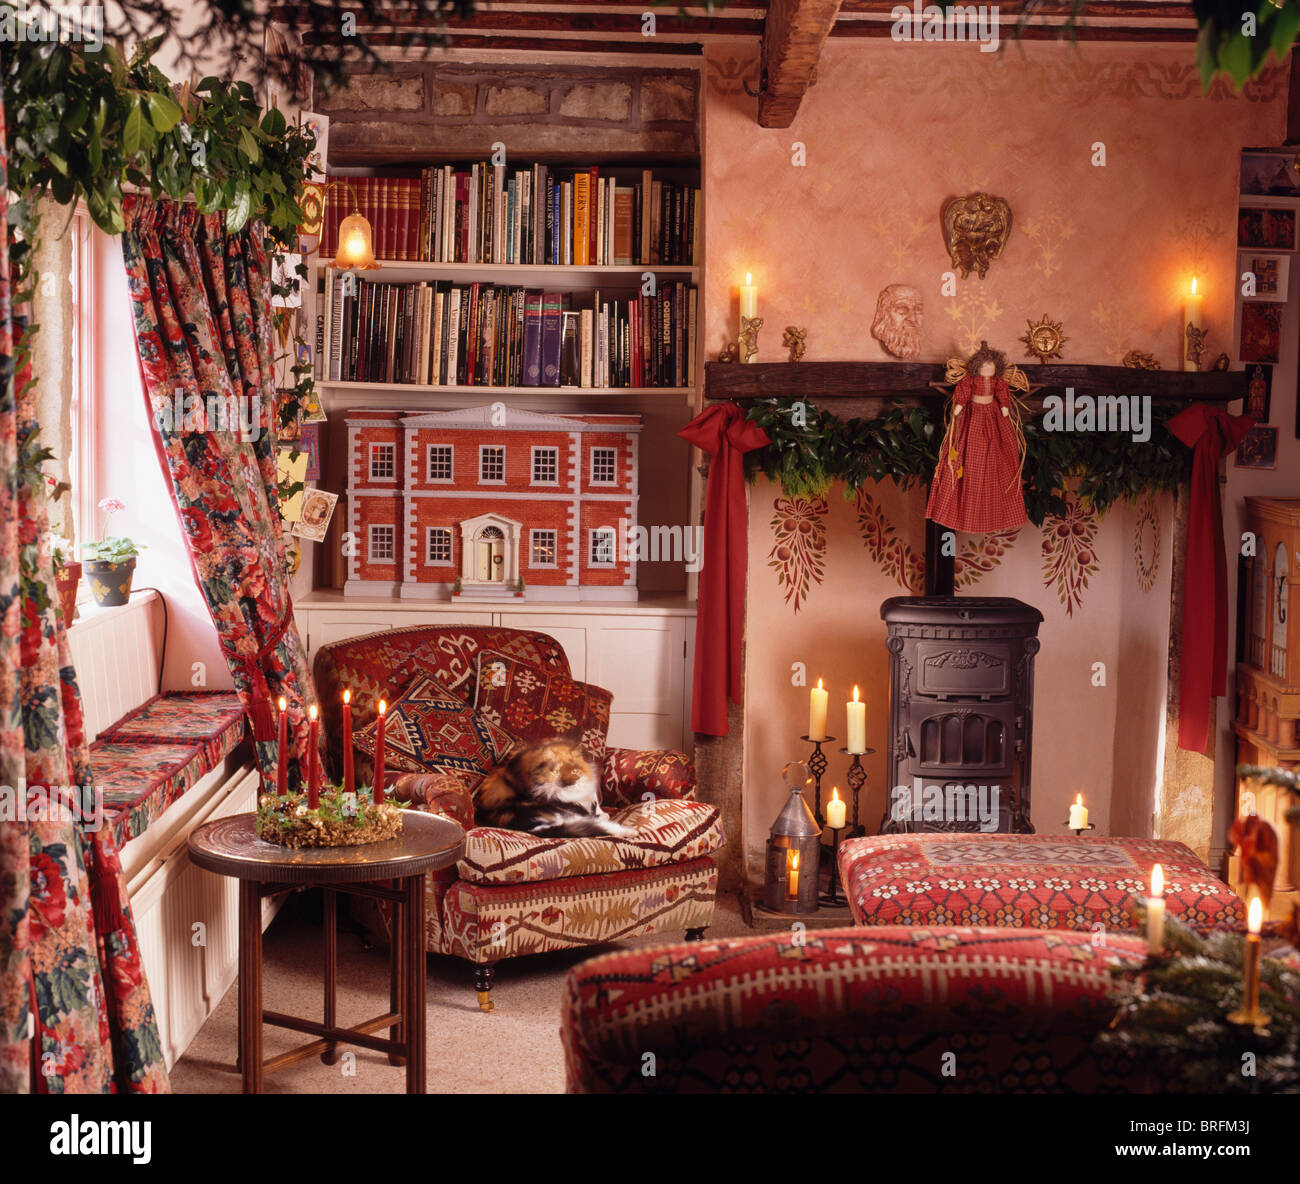 Stock Photo Of Christmas Living Room